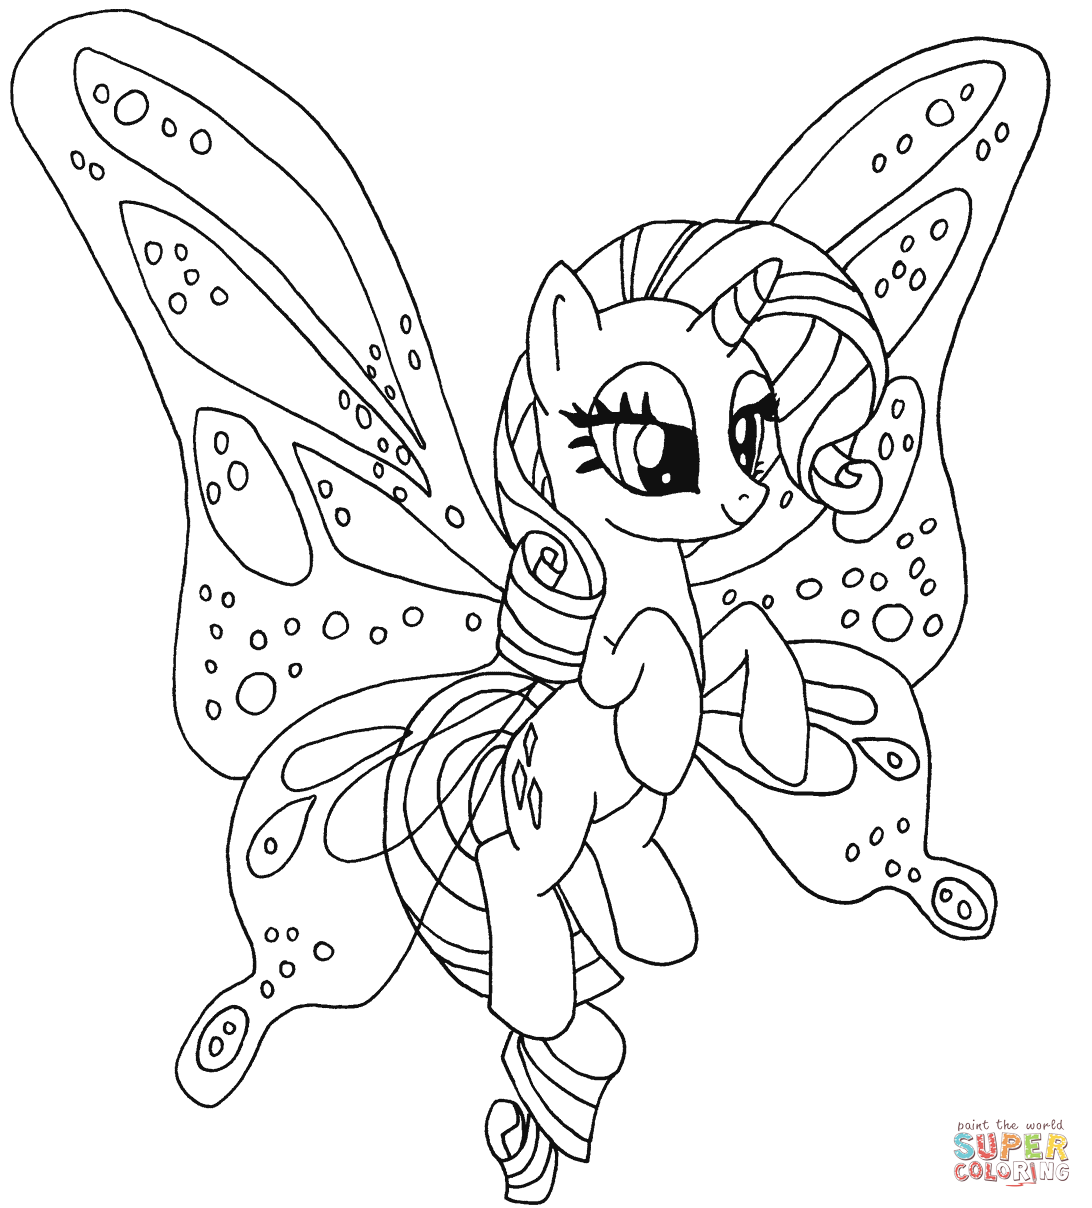 Drawn my little pony colouring picture Free Rainbow Pony Coloring Pages